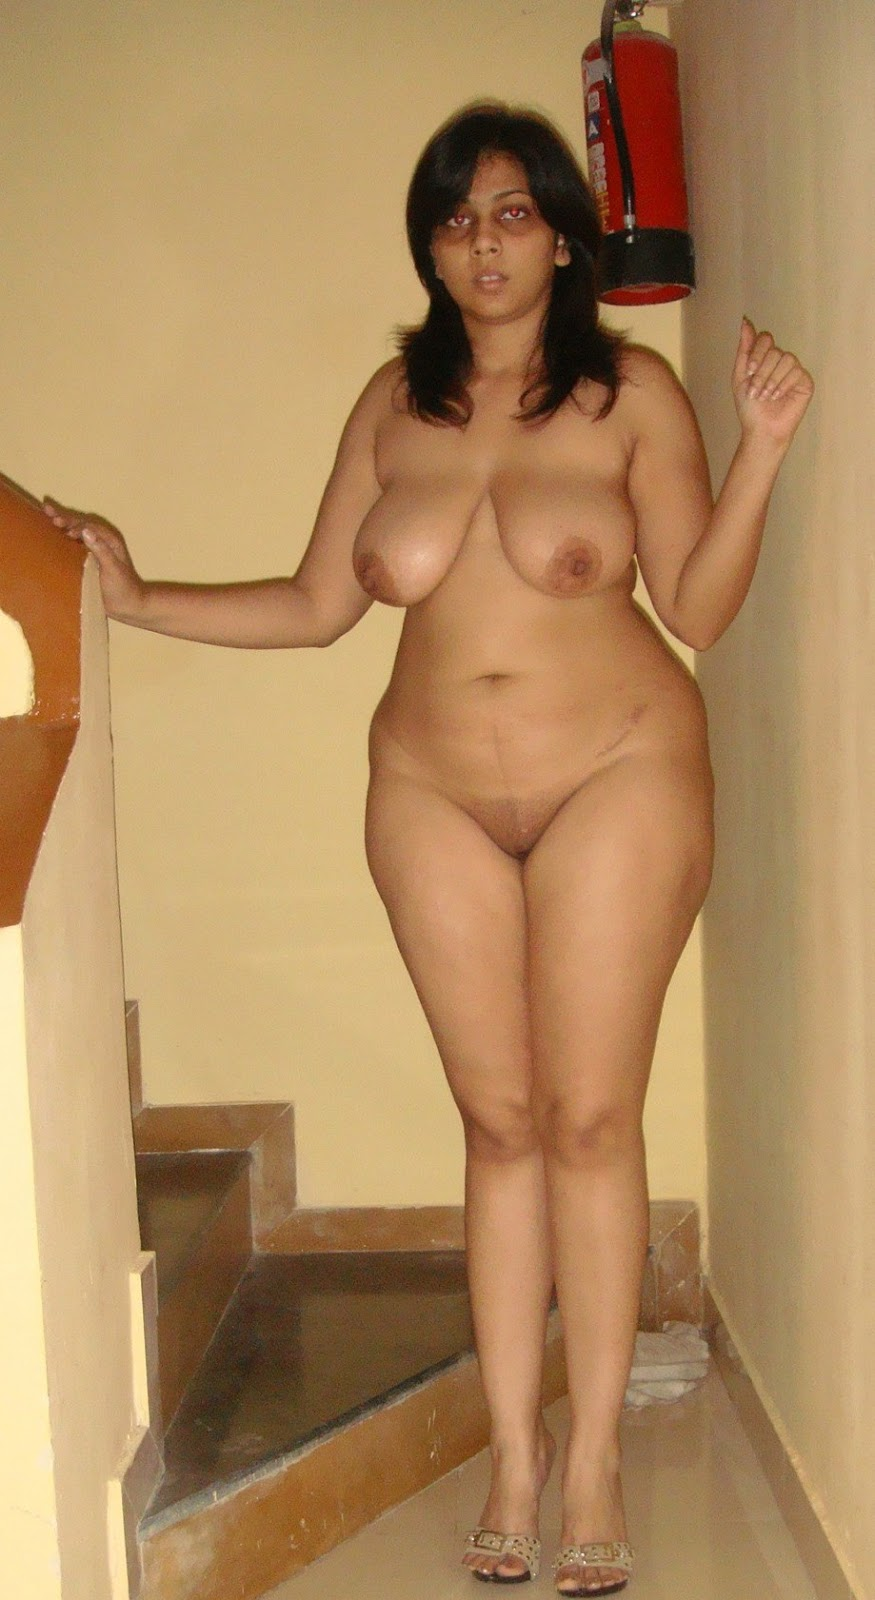 sexy naked mom from wizzards of waverly place